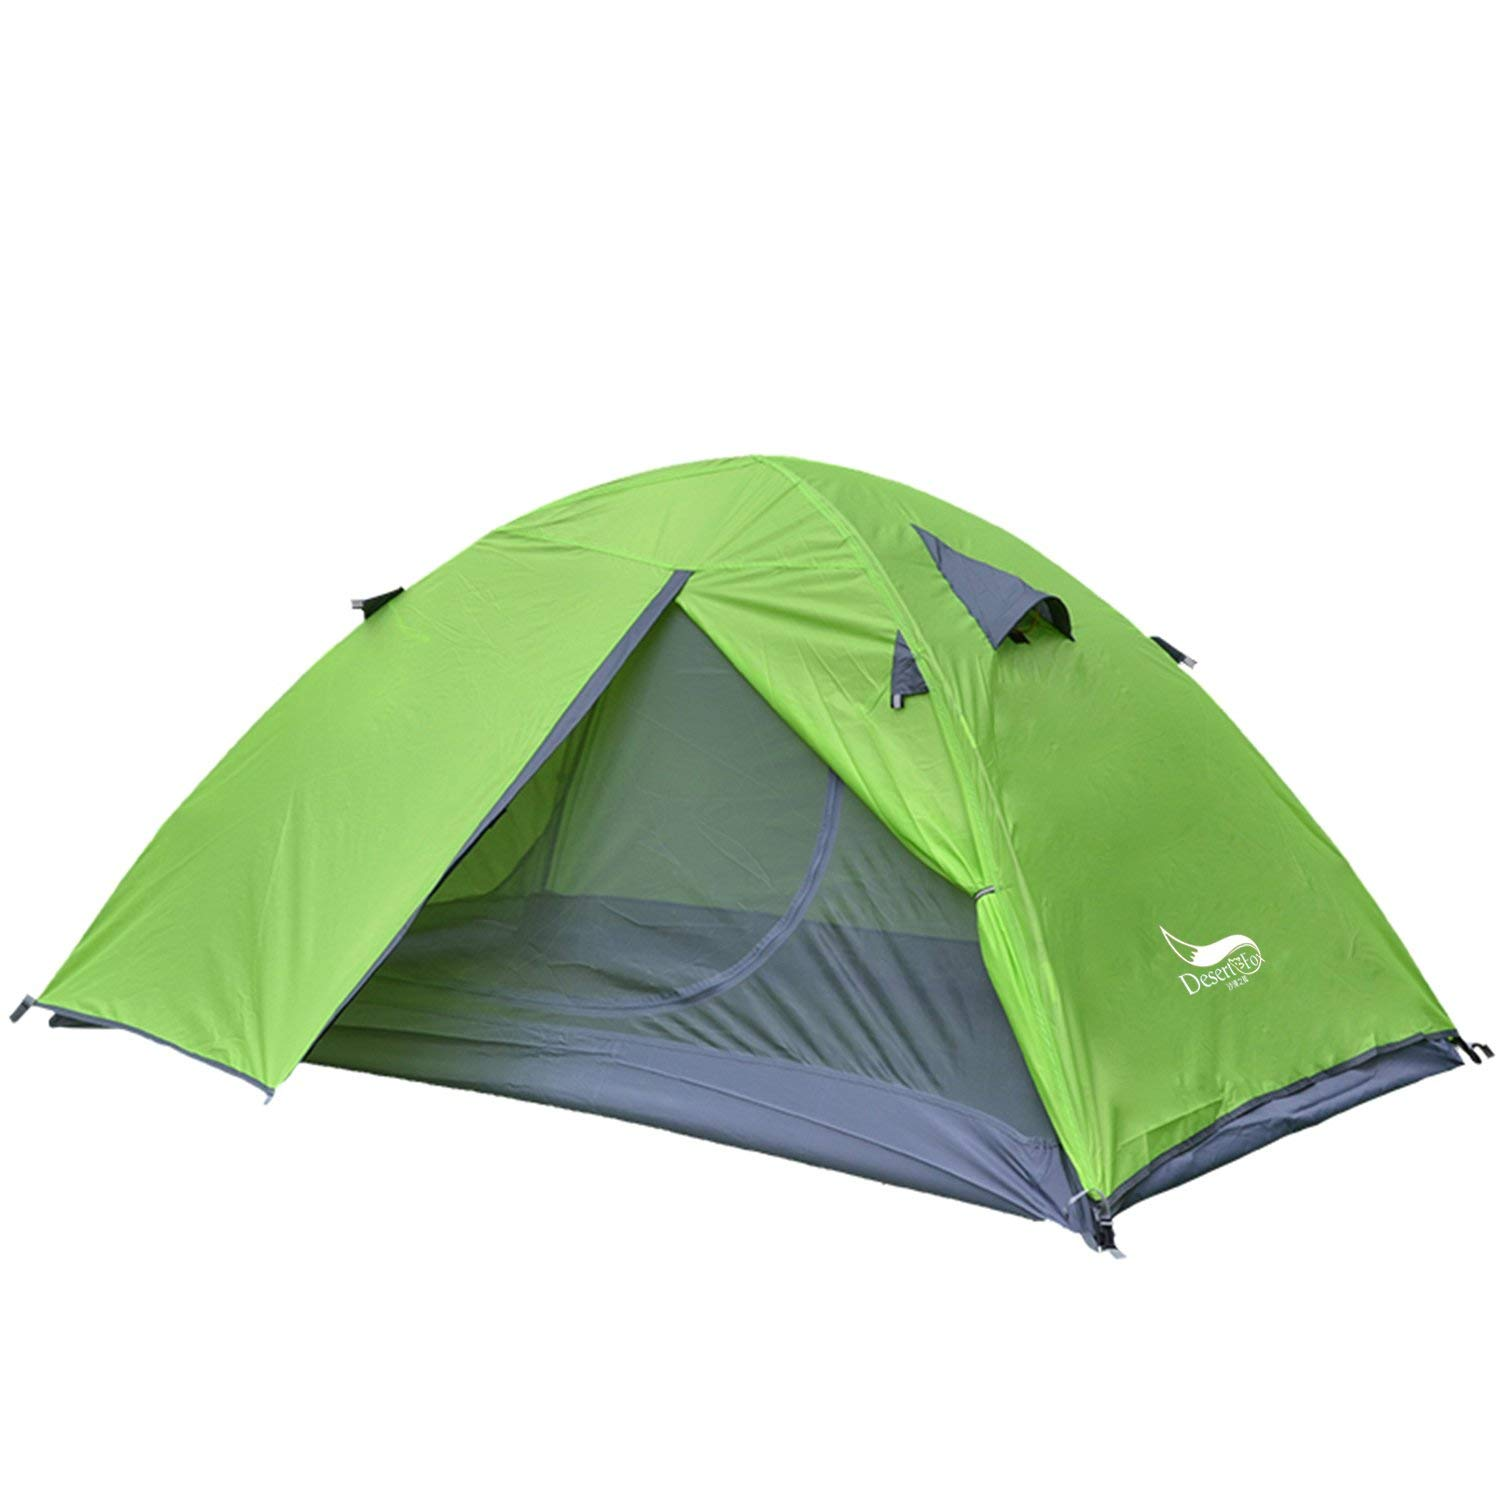 Desert&Fox Double Layers 2 Person Camping Tent Waterproof Outdoor Travel Tent with Portable Handbag